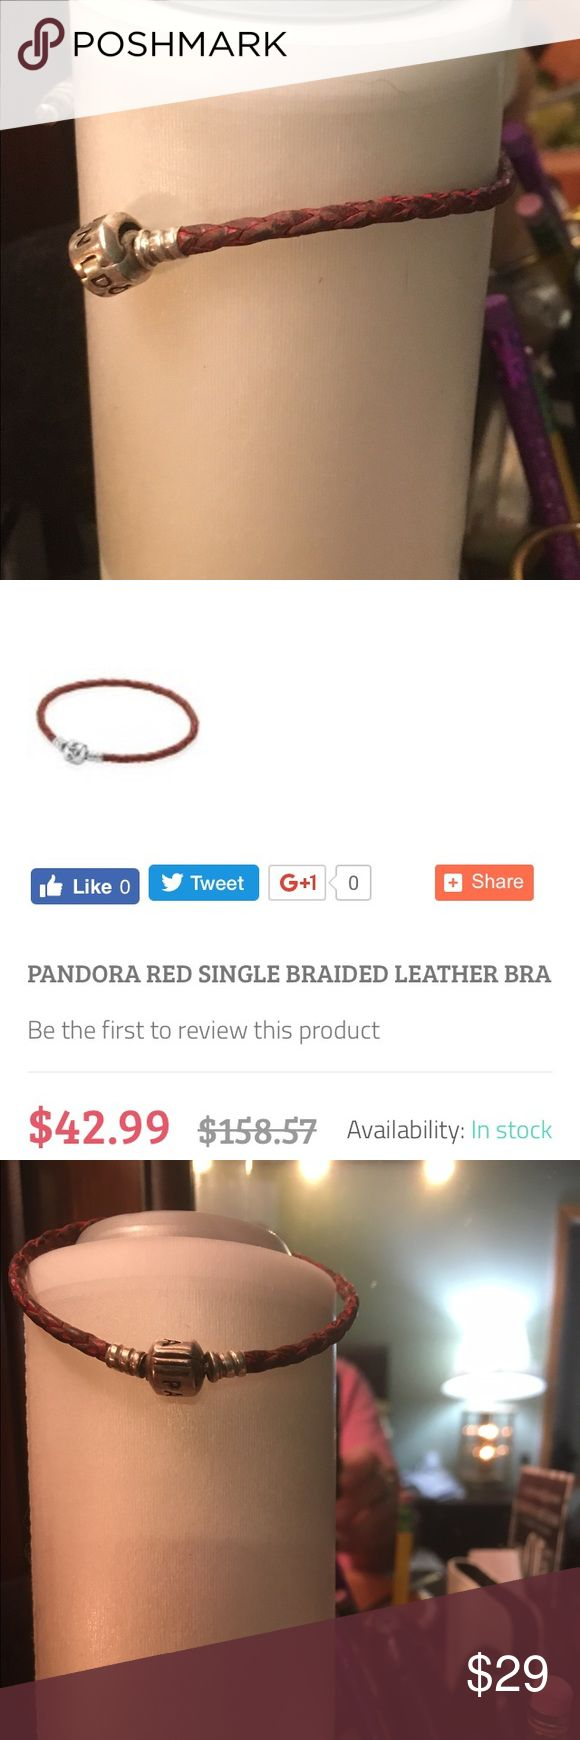 Pandora rope bracelet This Pandora bracelet is red leather (used) it is 6 1/2 inches in length Pandora Jewelry Bracelets